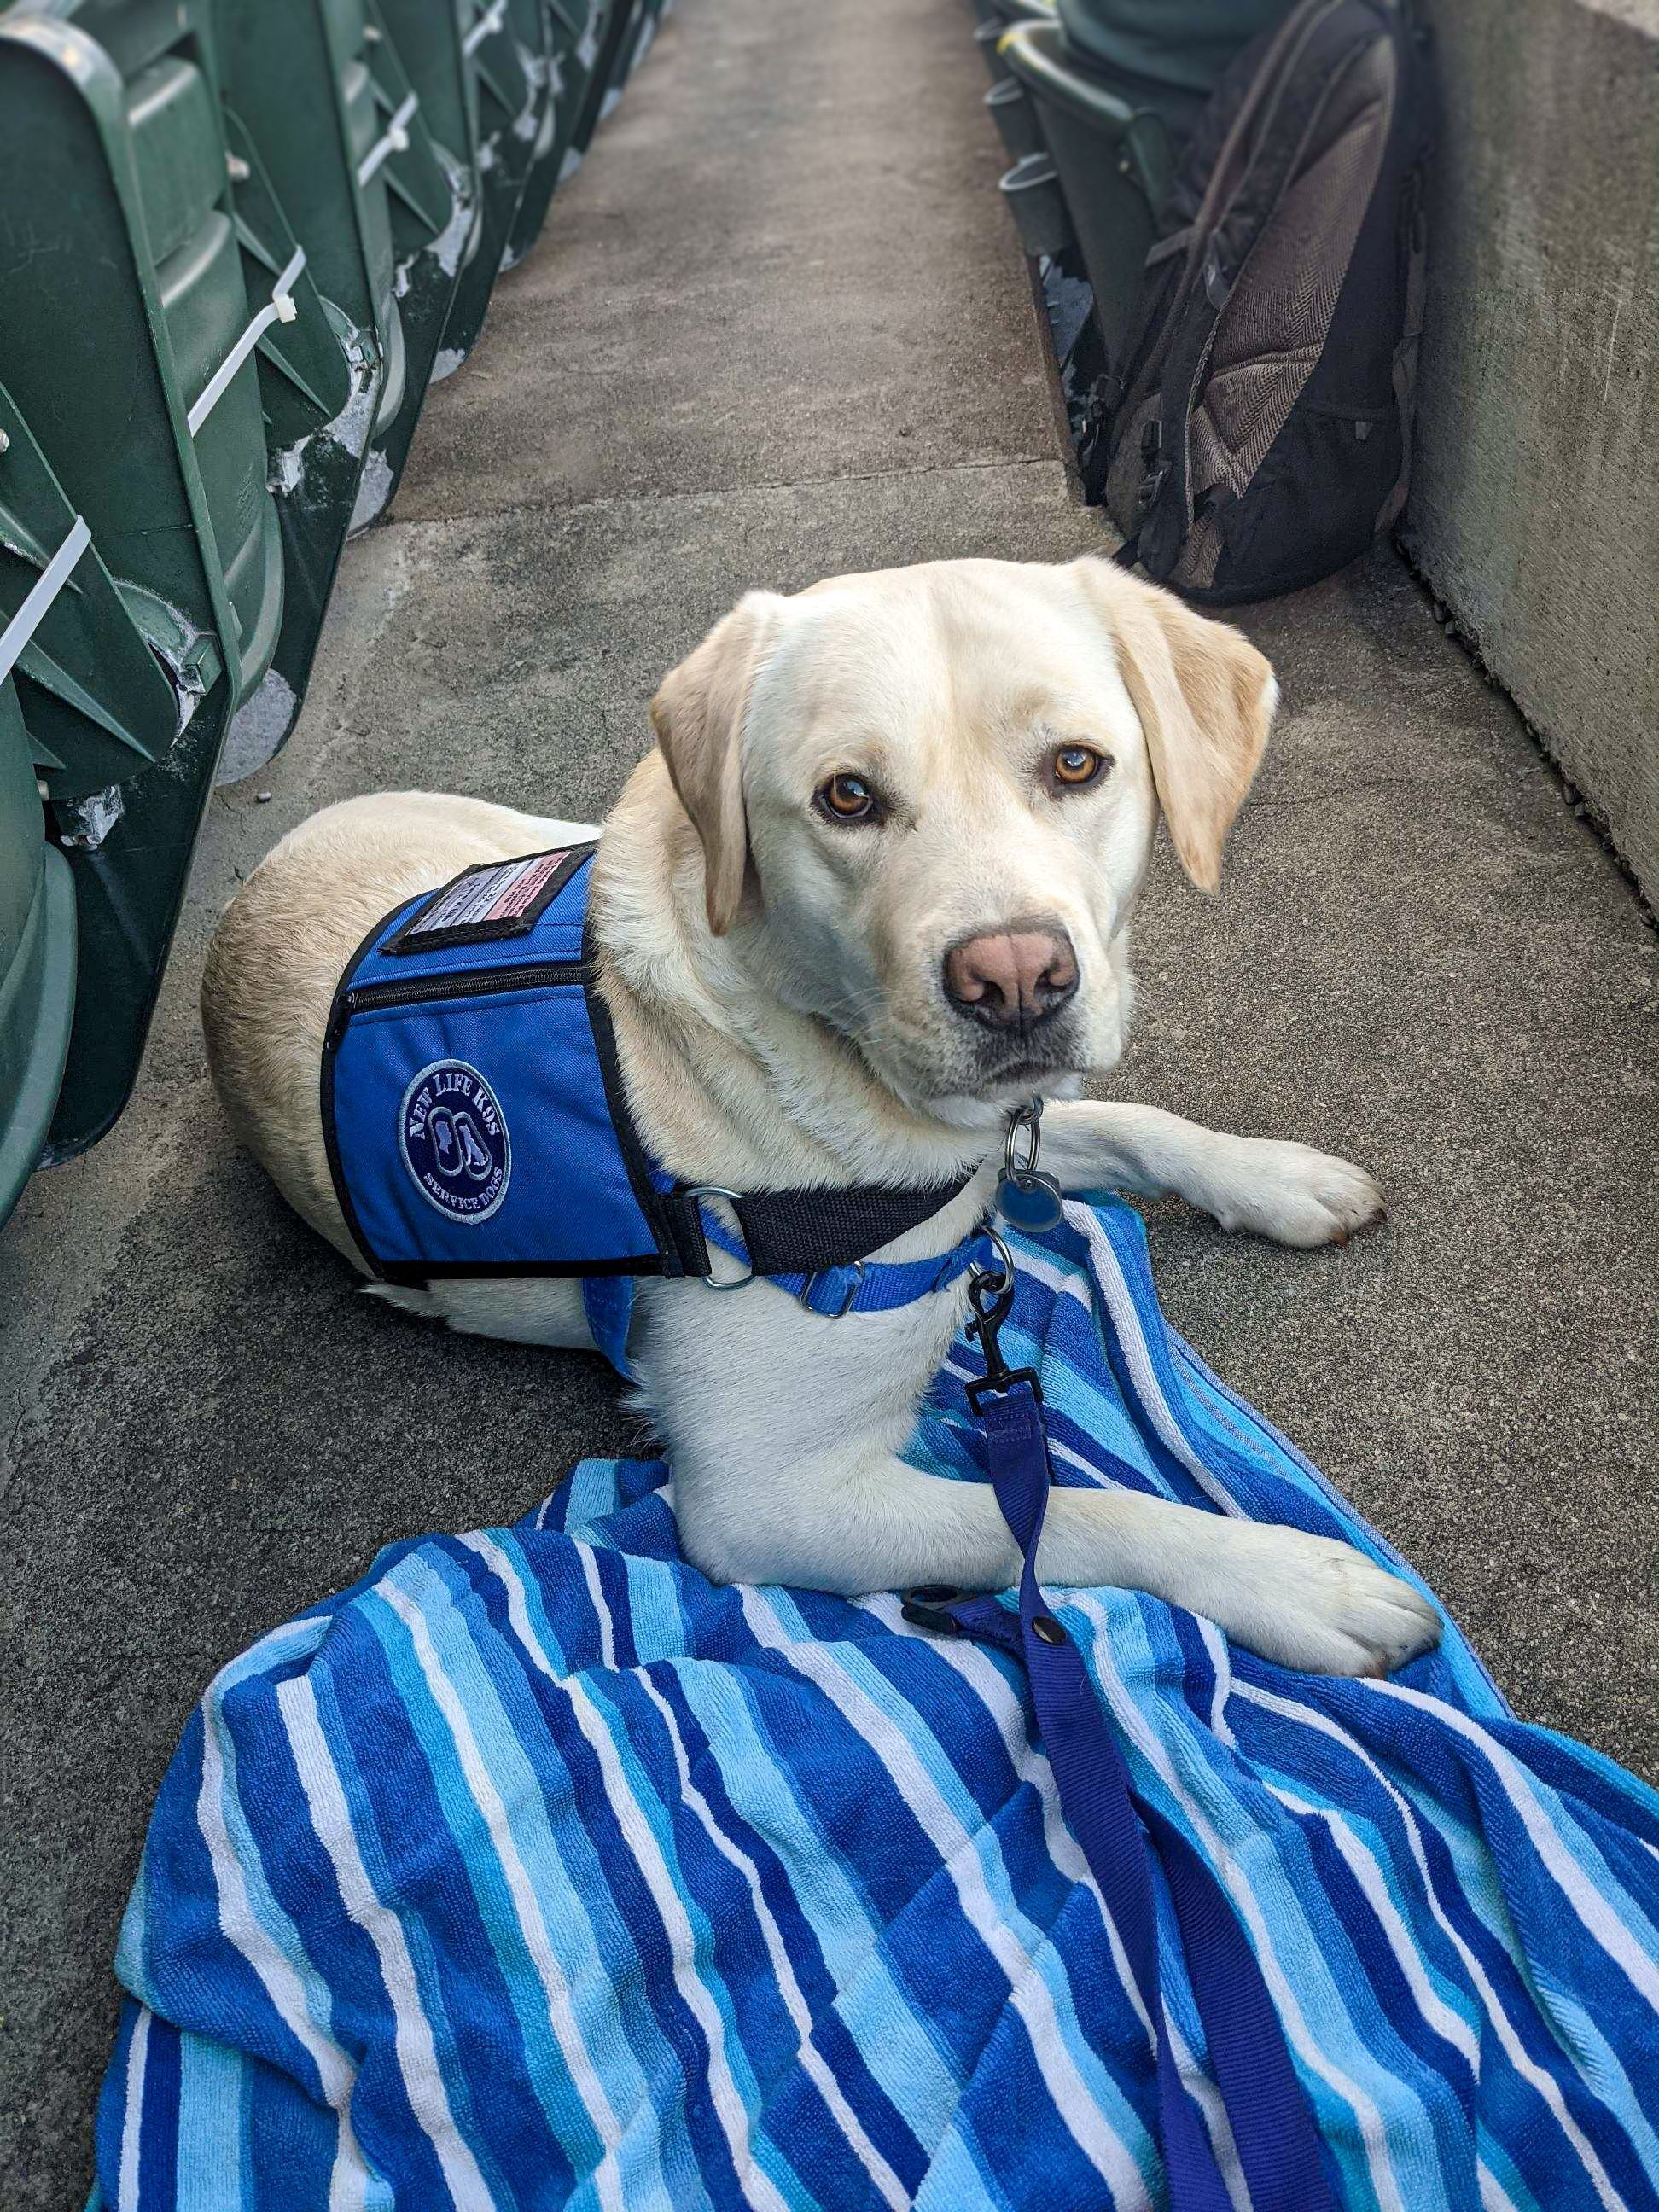 How Research on Service Dogs is Changing PTSD Treatment Models